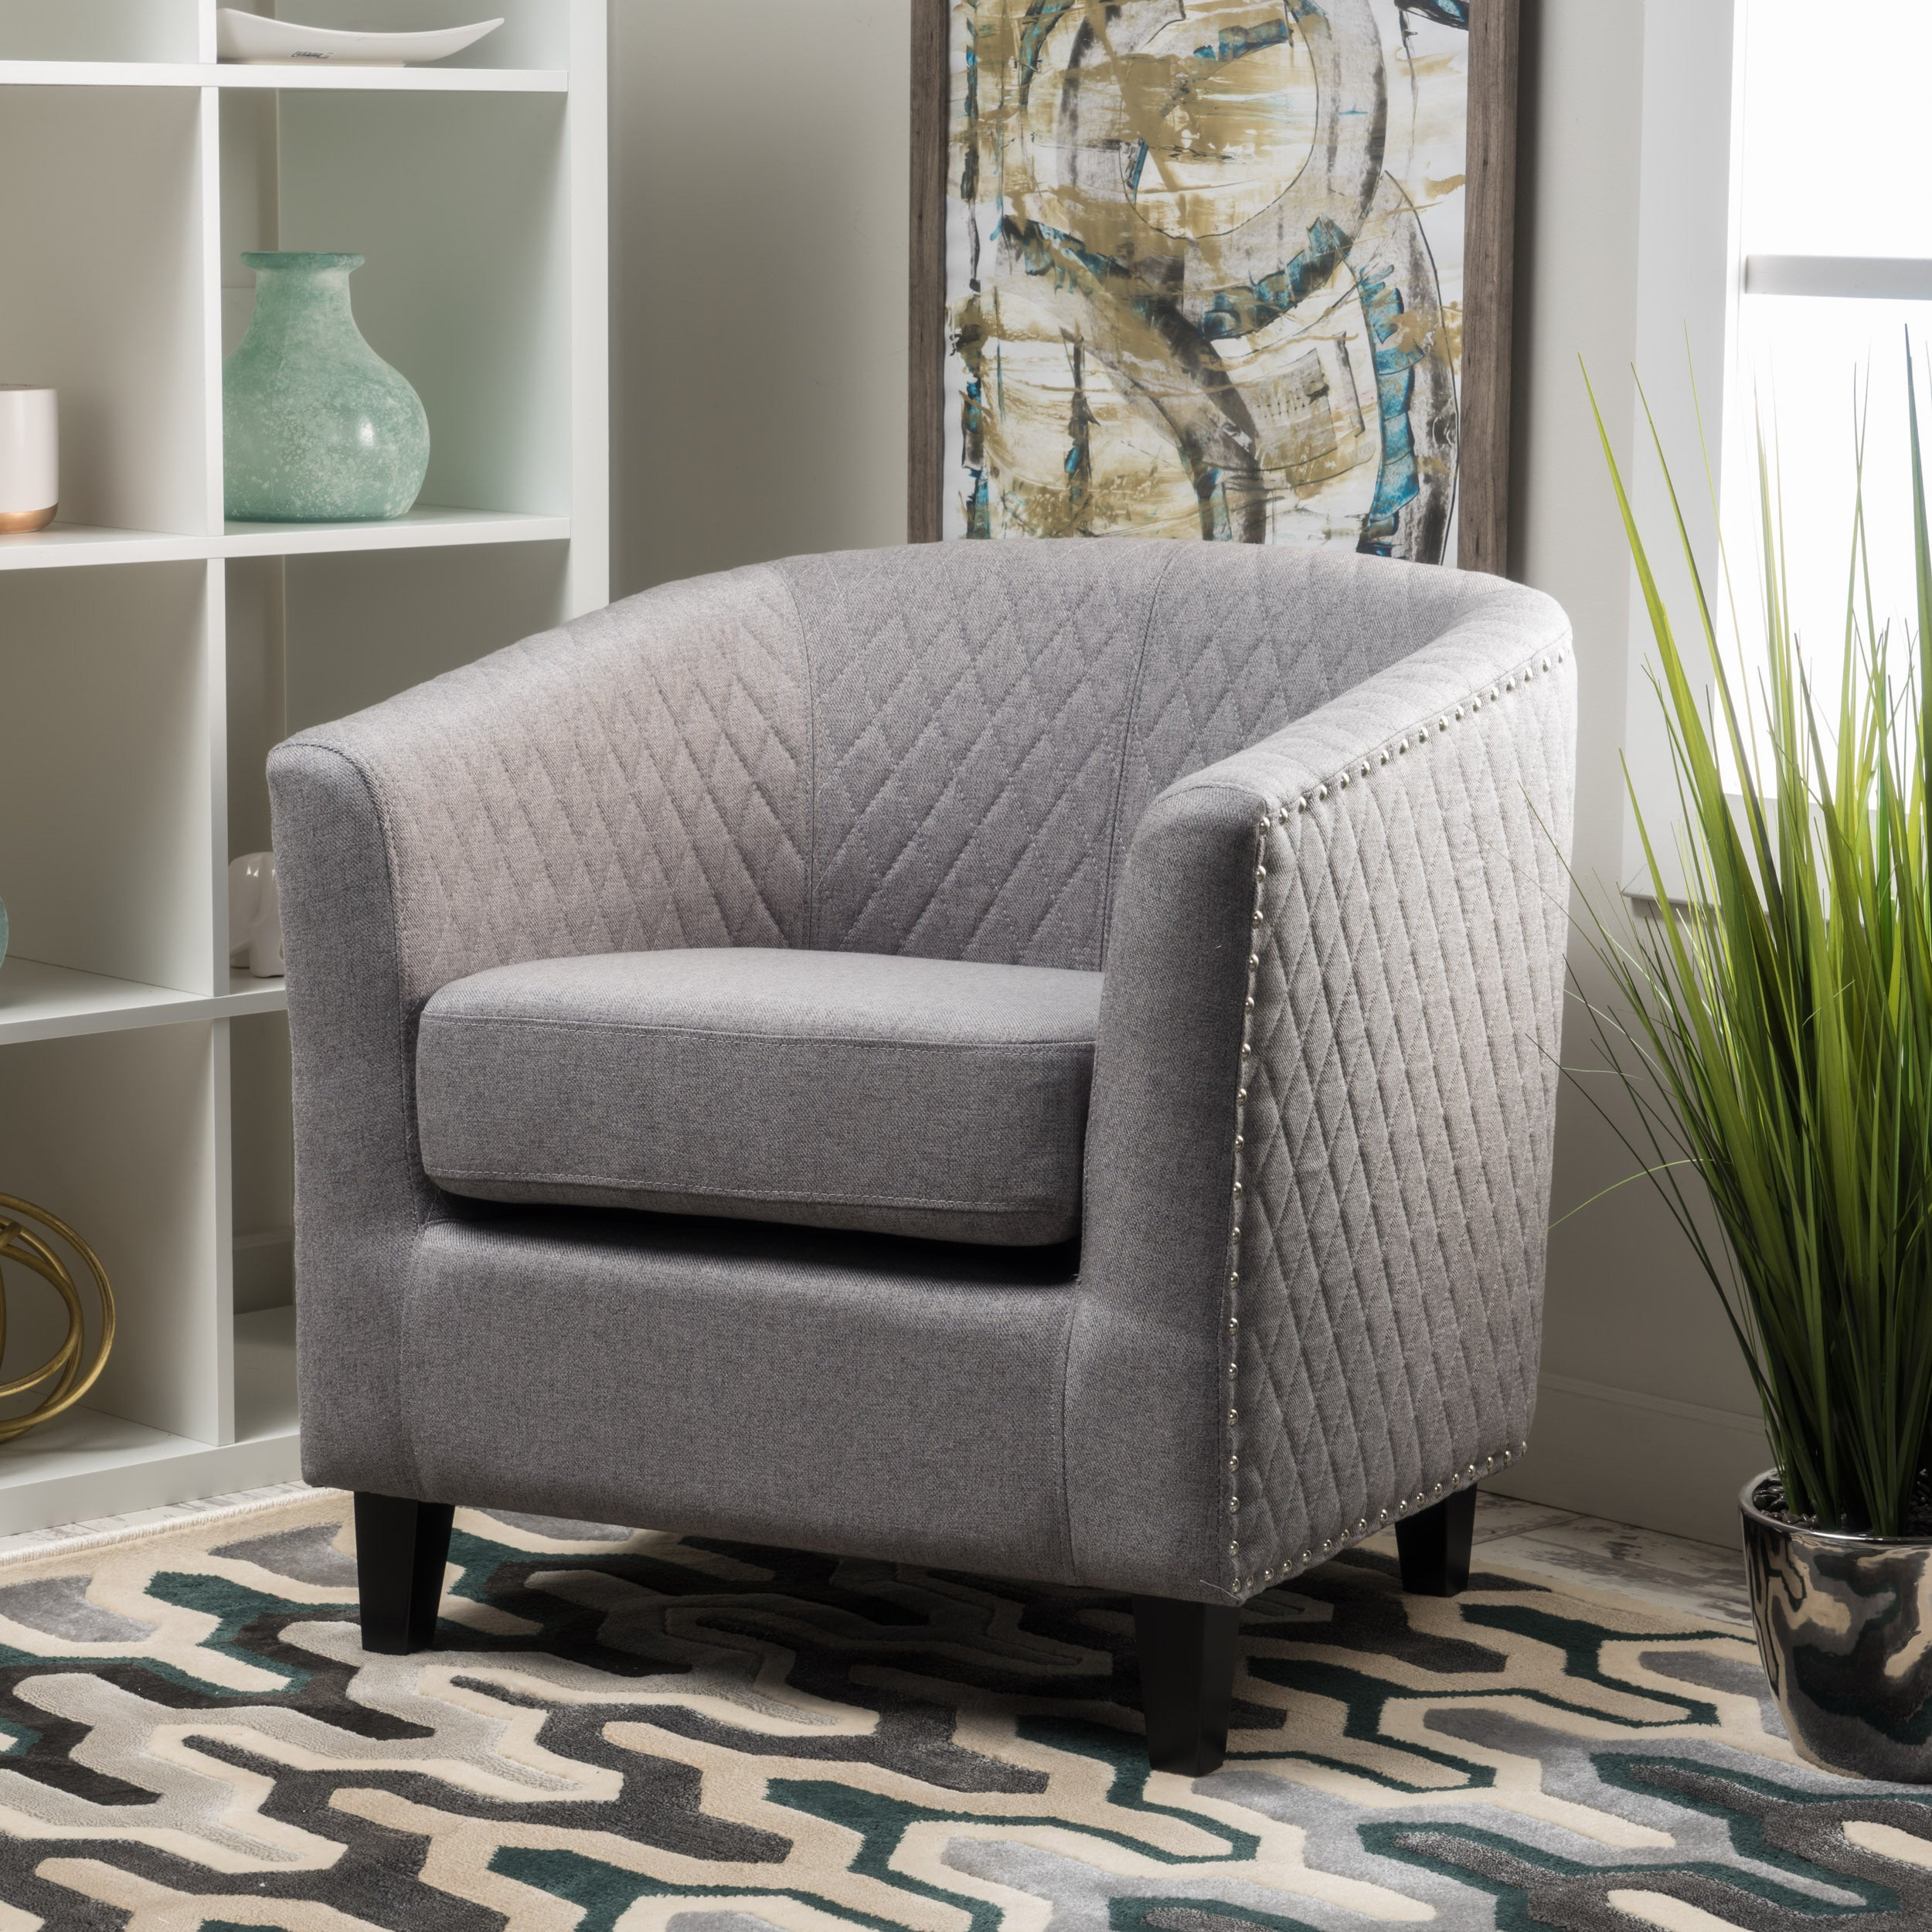 Shop Mia Quilted Fabric Club Chair By Christopher Knight Home   On Sale    Free Shipping Today   Overstock.com   13683493